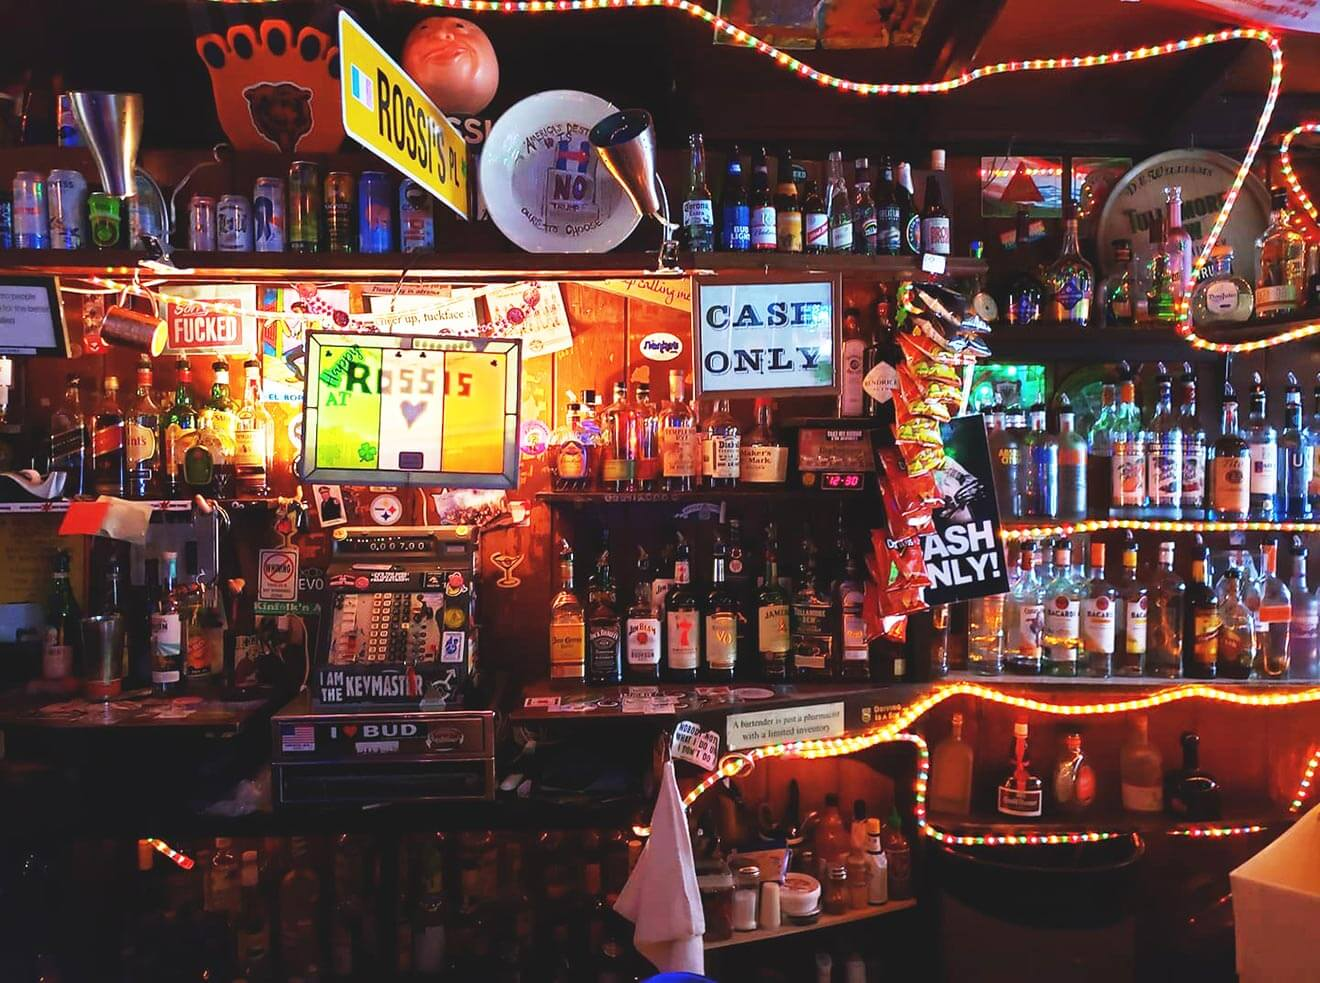 Rossi's Liquors, shelves with booze, bar